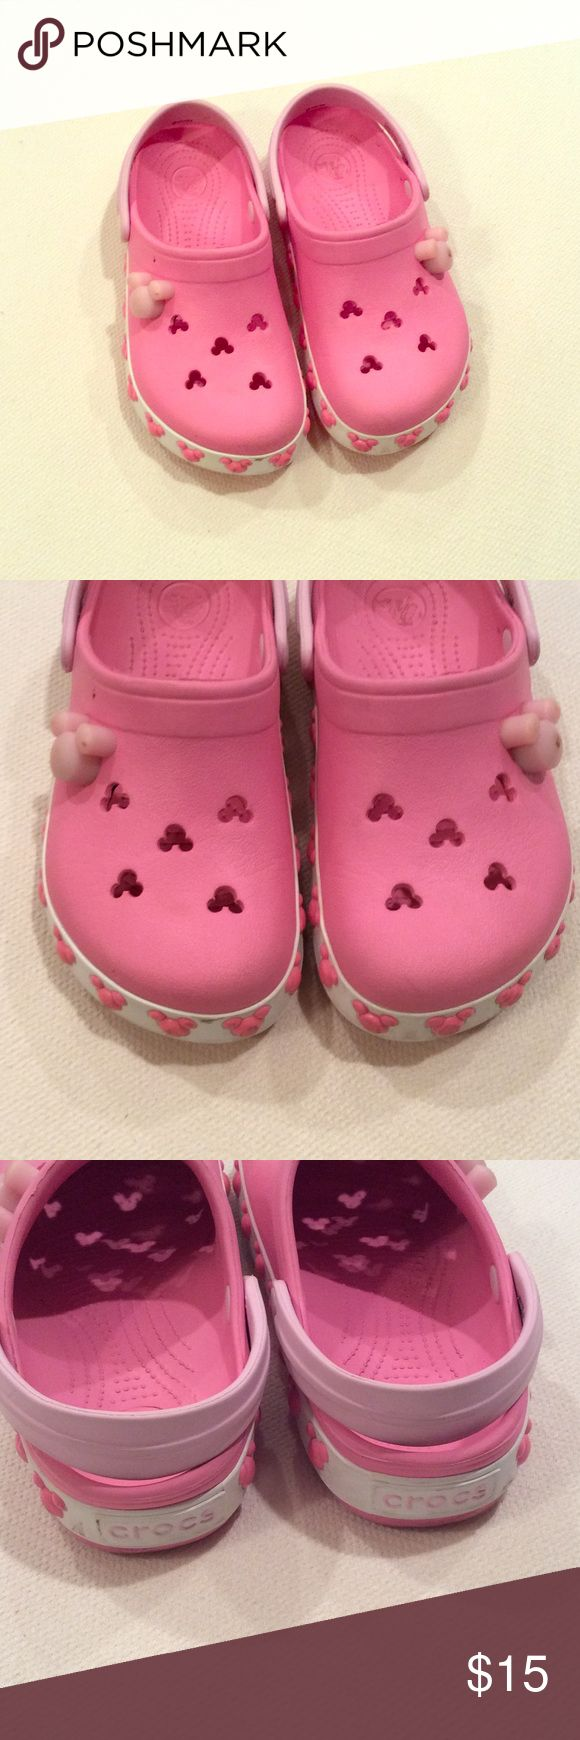 Pink Crocs Pink and White Minnie Mouse themed Crocs. Excellent condition. Toddler size 12/13 CROCS Shoes